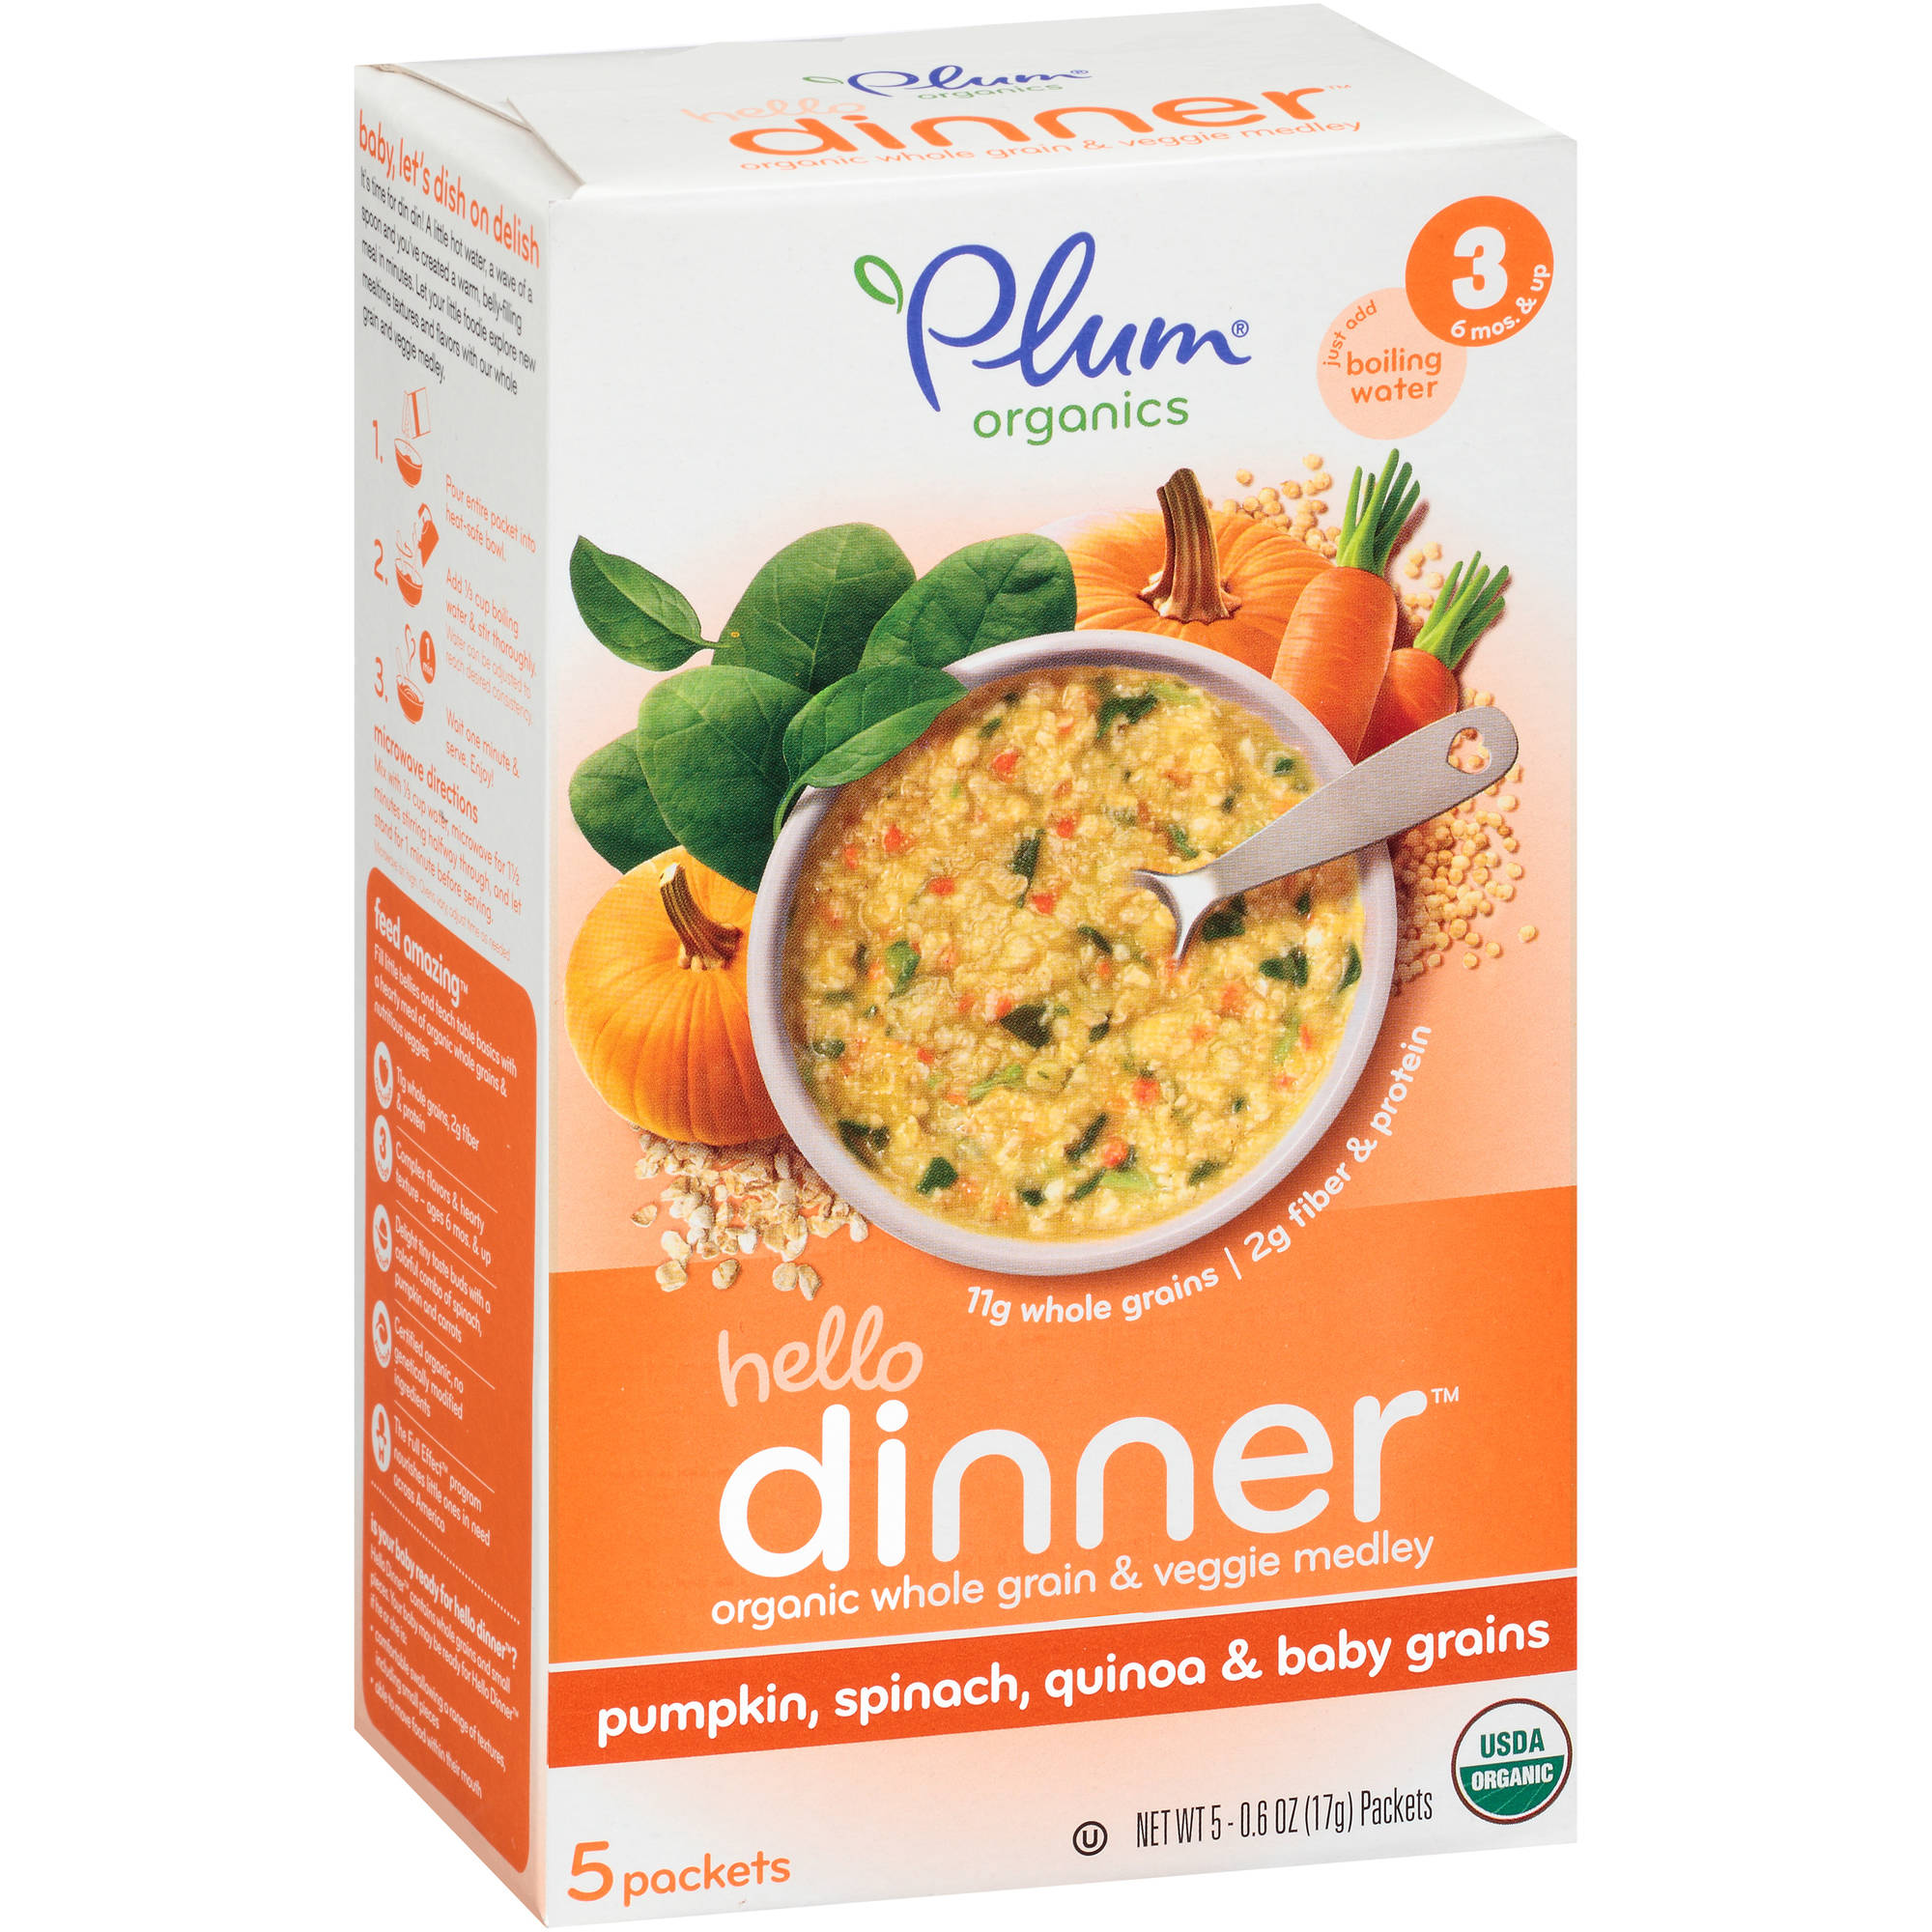 Plum Organics Hello Dinner Pumpkin, Spinach, Quinoa & Baby Grains Stage 3 Baby Food, 0.6 oz, 5 count (Pack of 6)